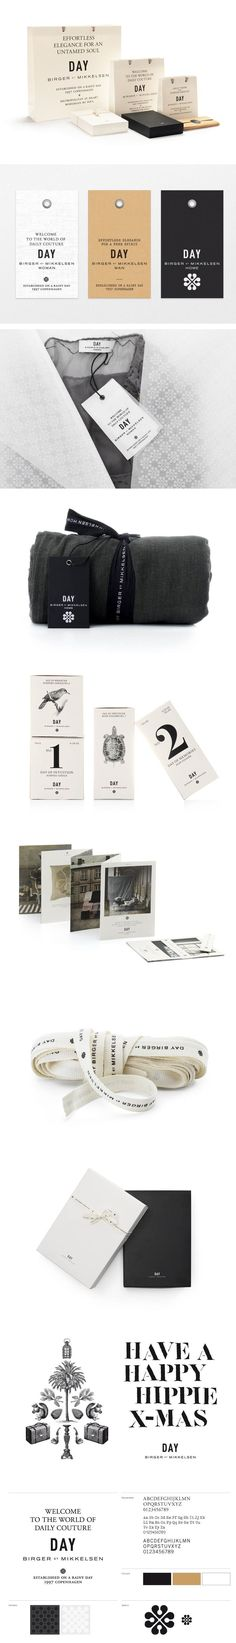 DAY Birger et Mikkelsen branding by BAS. World of Couture Day #identity #packaging #branding PD